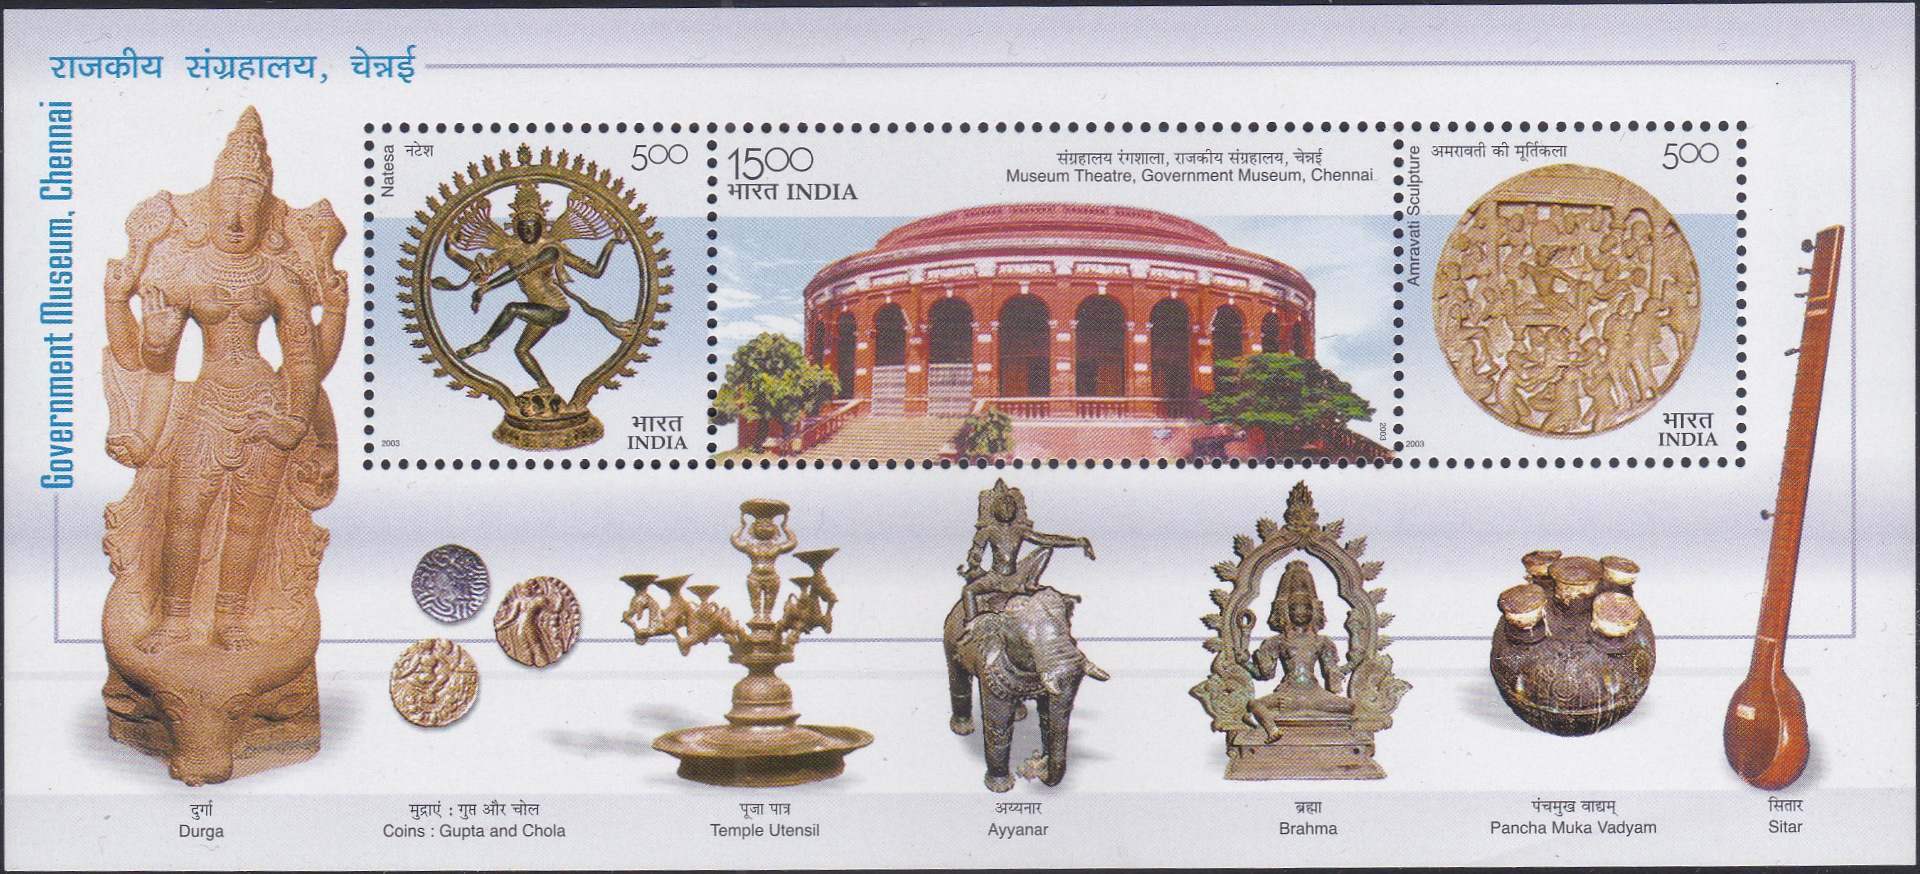 Madras Museum : Second Oldest Indian Museum